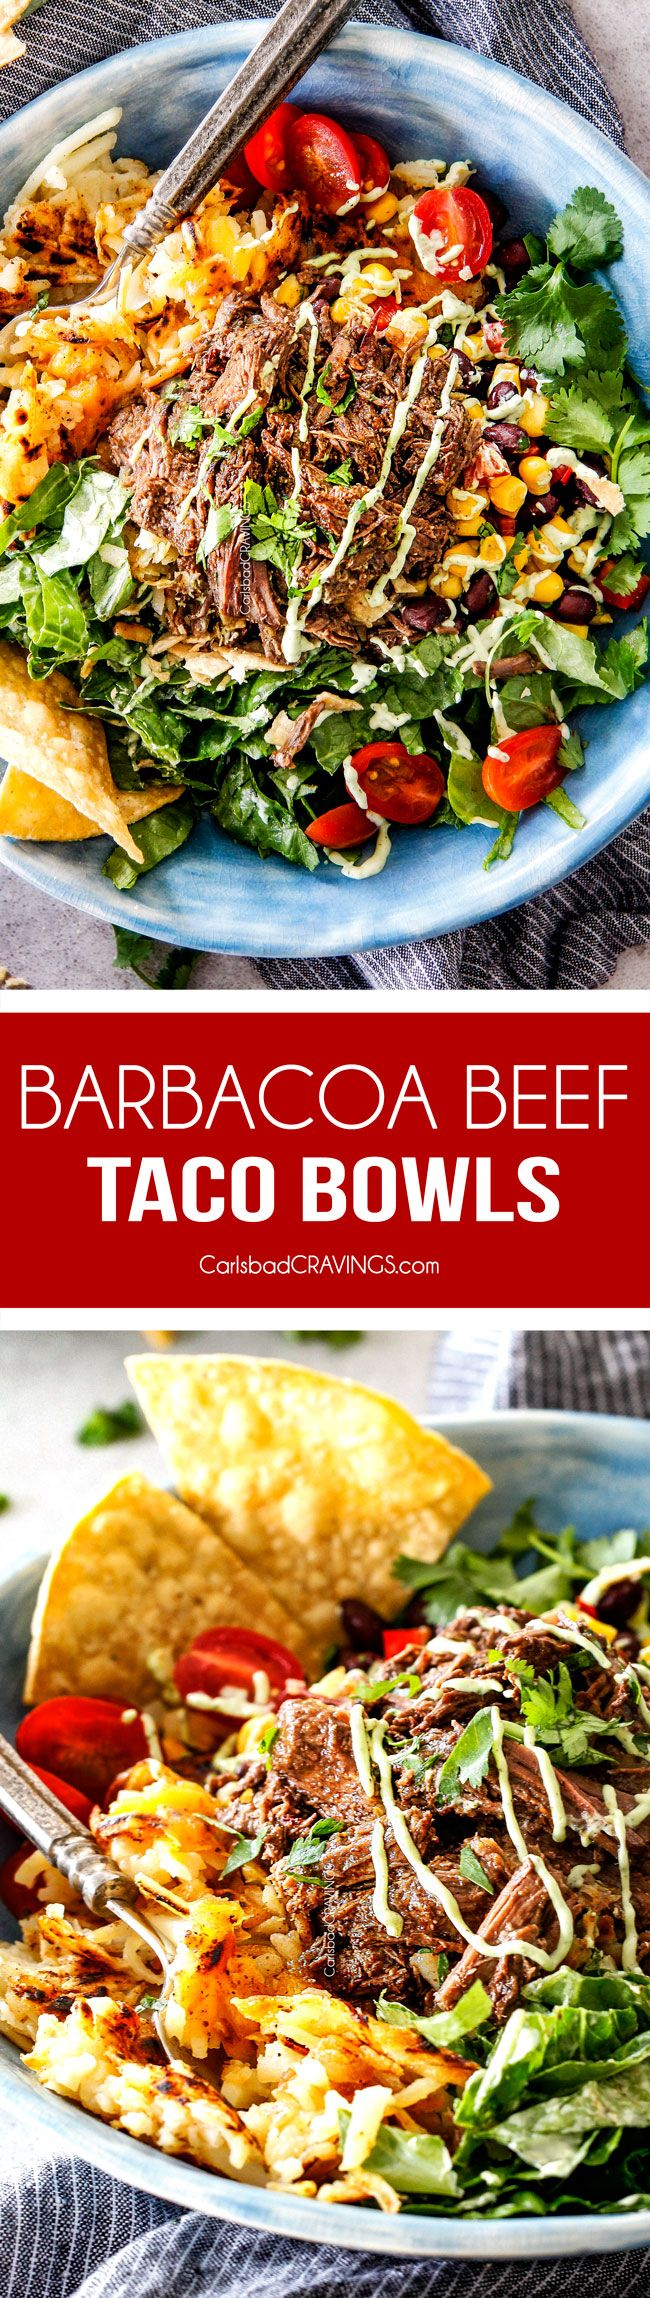 TheseBarbacoaBeef Taco Bowls are SO addicting and I love the Avocado Ranch! They are an explosion of flavor and texture in every juicy, crispy bite and make a fabulous prep ahead dinner or Game Day taco bowl bar favorite! via @carlsbadcraving